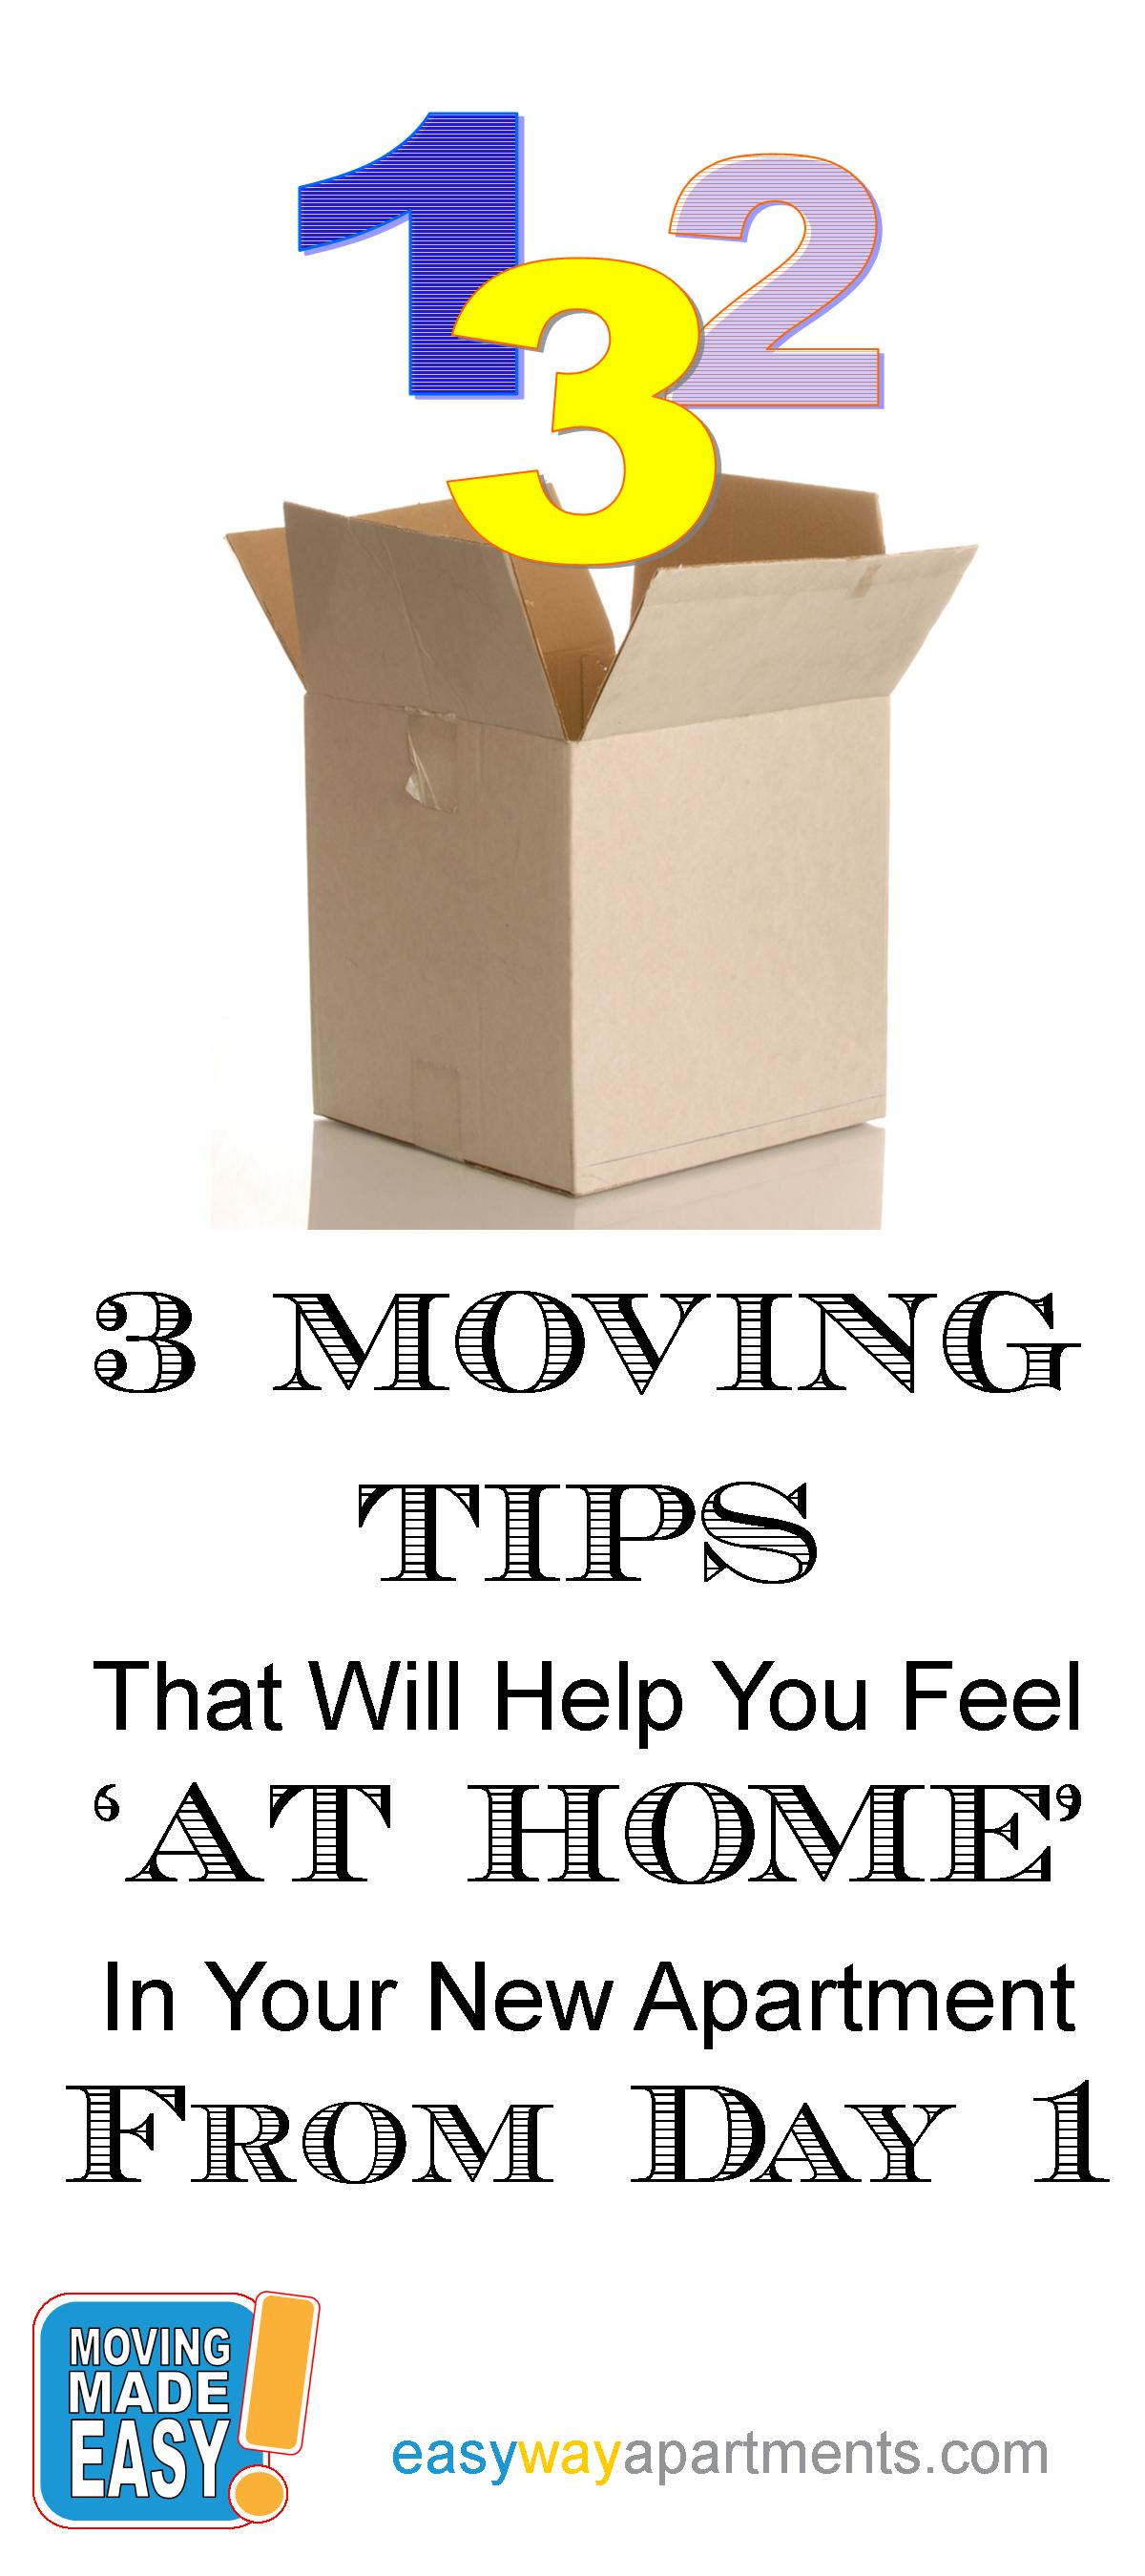 These 3 tips will help you feel comfy and cozy in your new apartment from dayone!